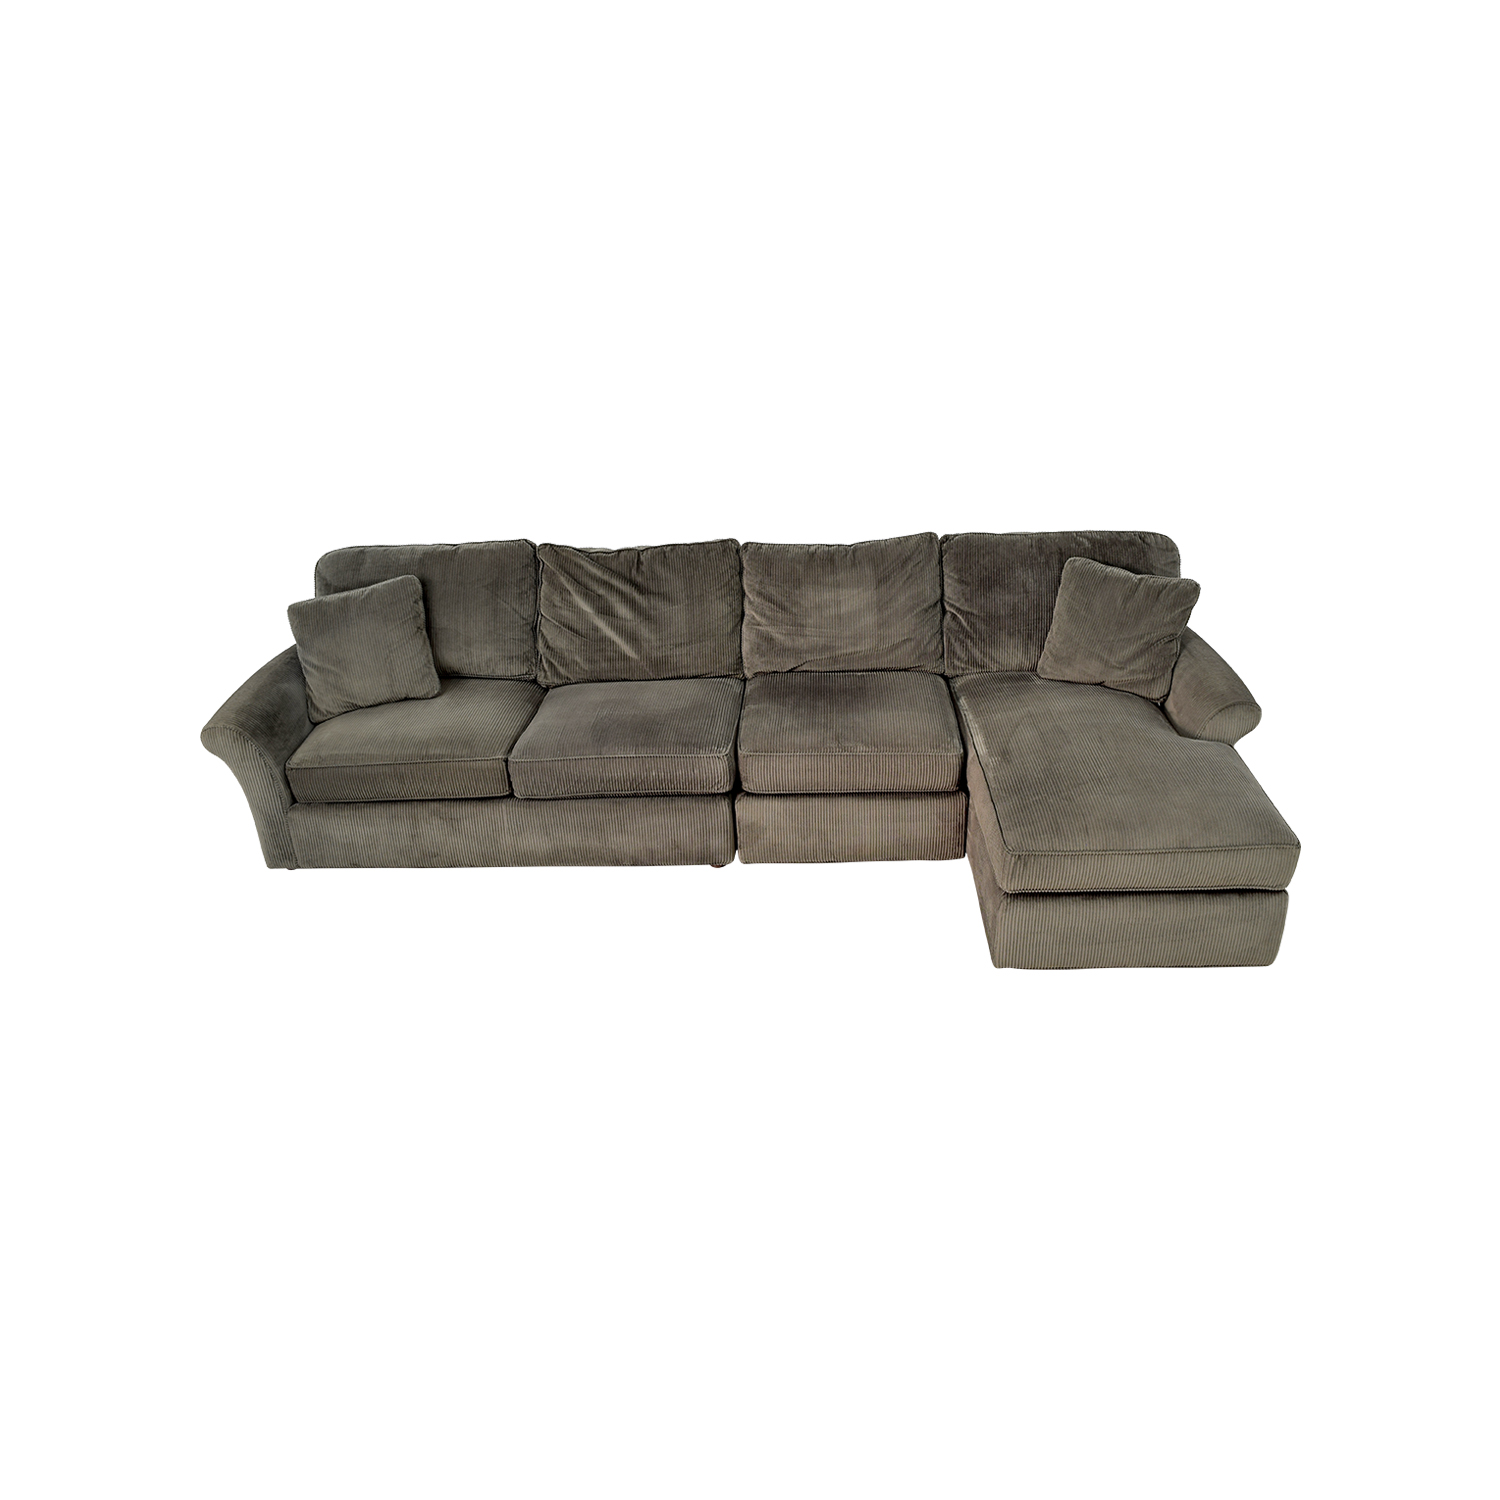 shop Macys Modern Concepts Charcoal Gray Corduroy Chaise Sectional Macys Sofas